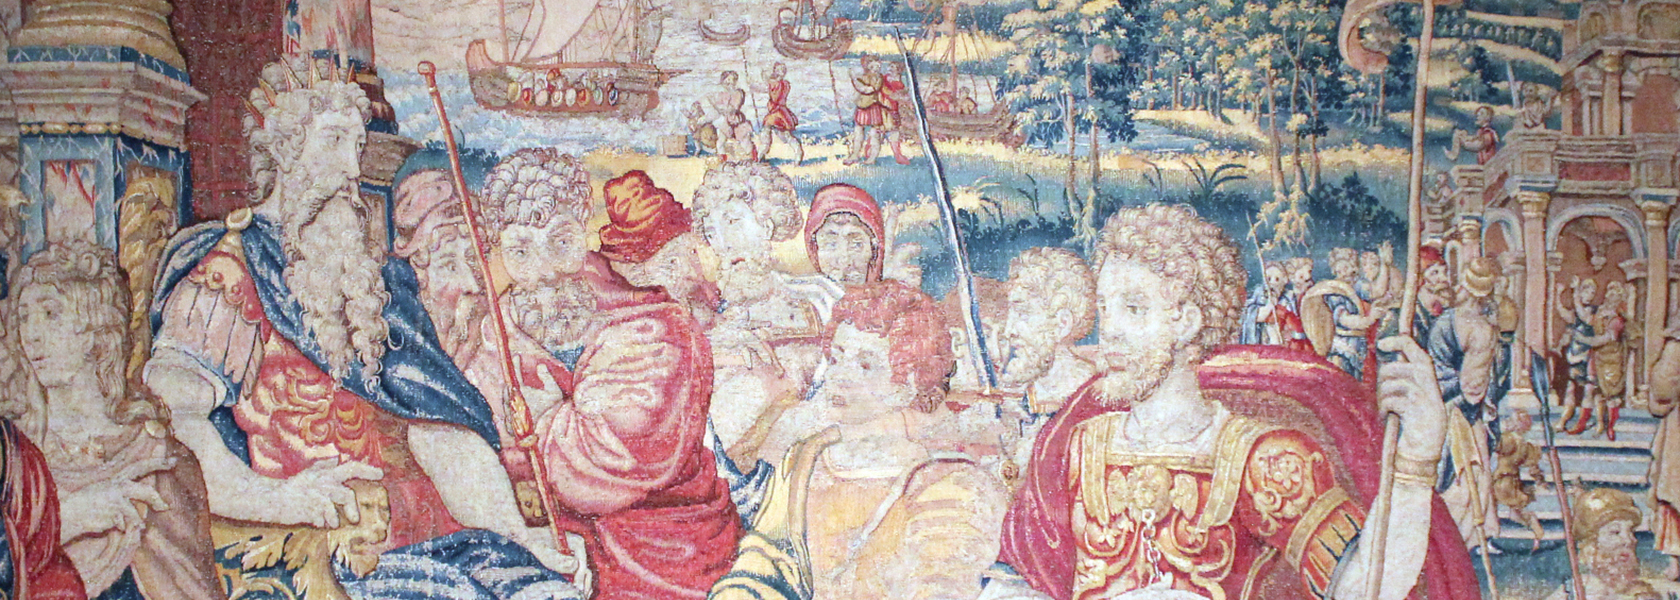 A detail shot of the tapestry featuring a warrior dressed in red, gold and blue holding a spear